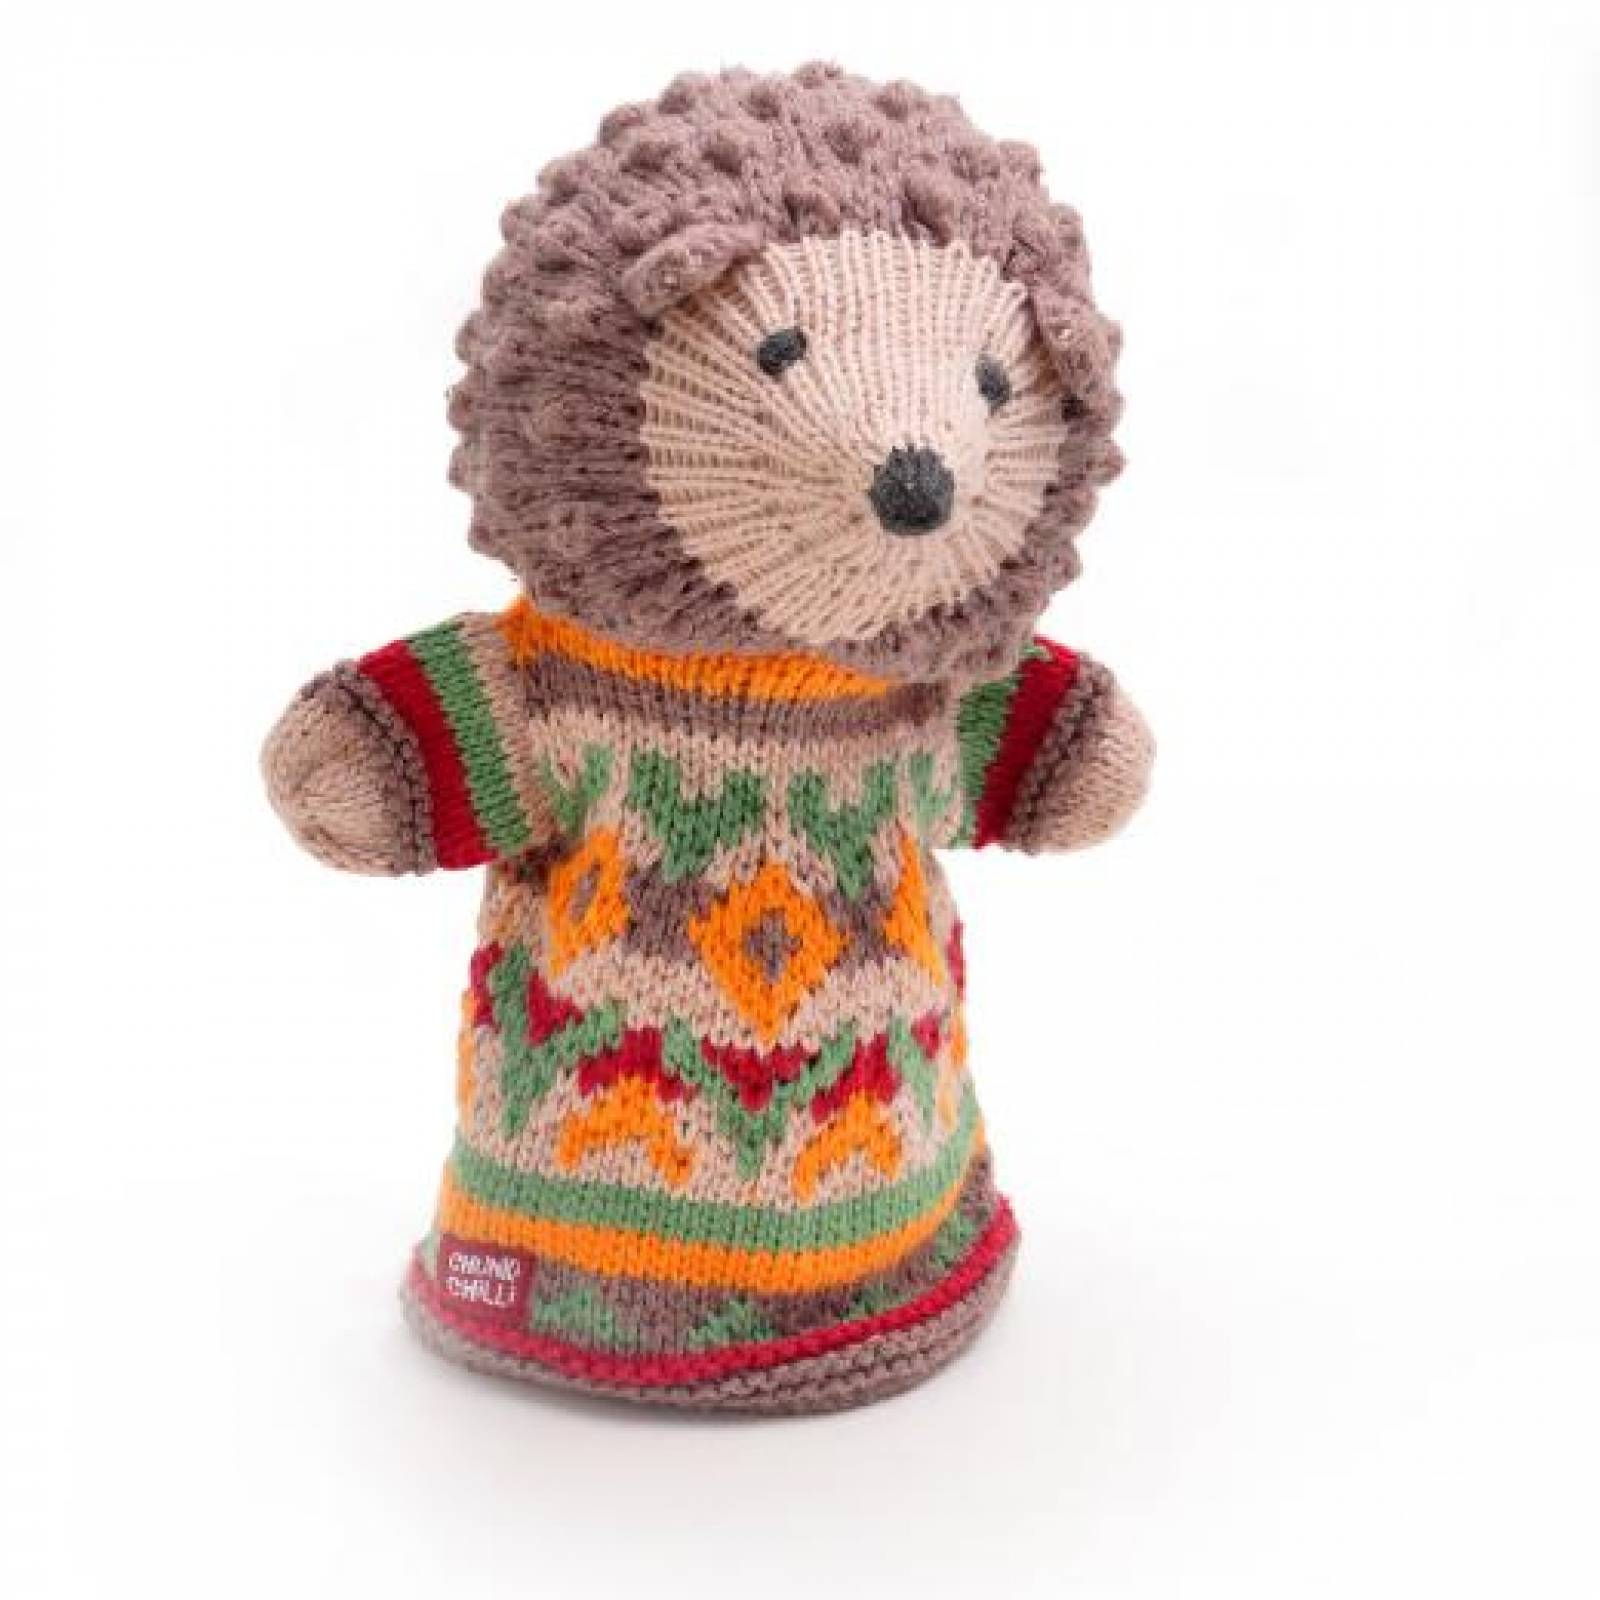 Hedgehog - Hand Knitted Glove Puppet Organic Cotton